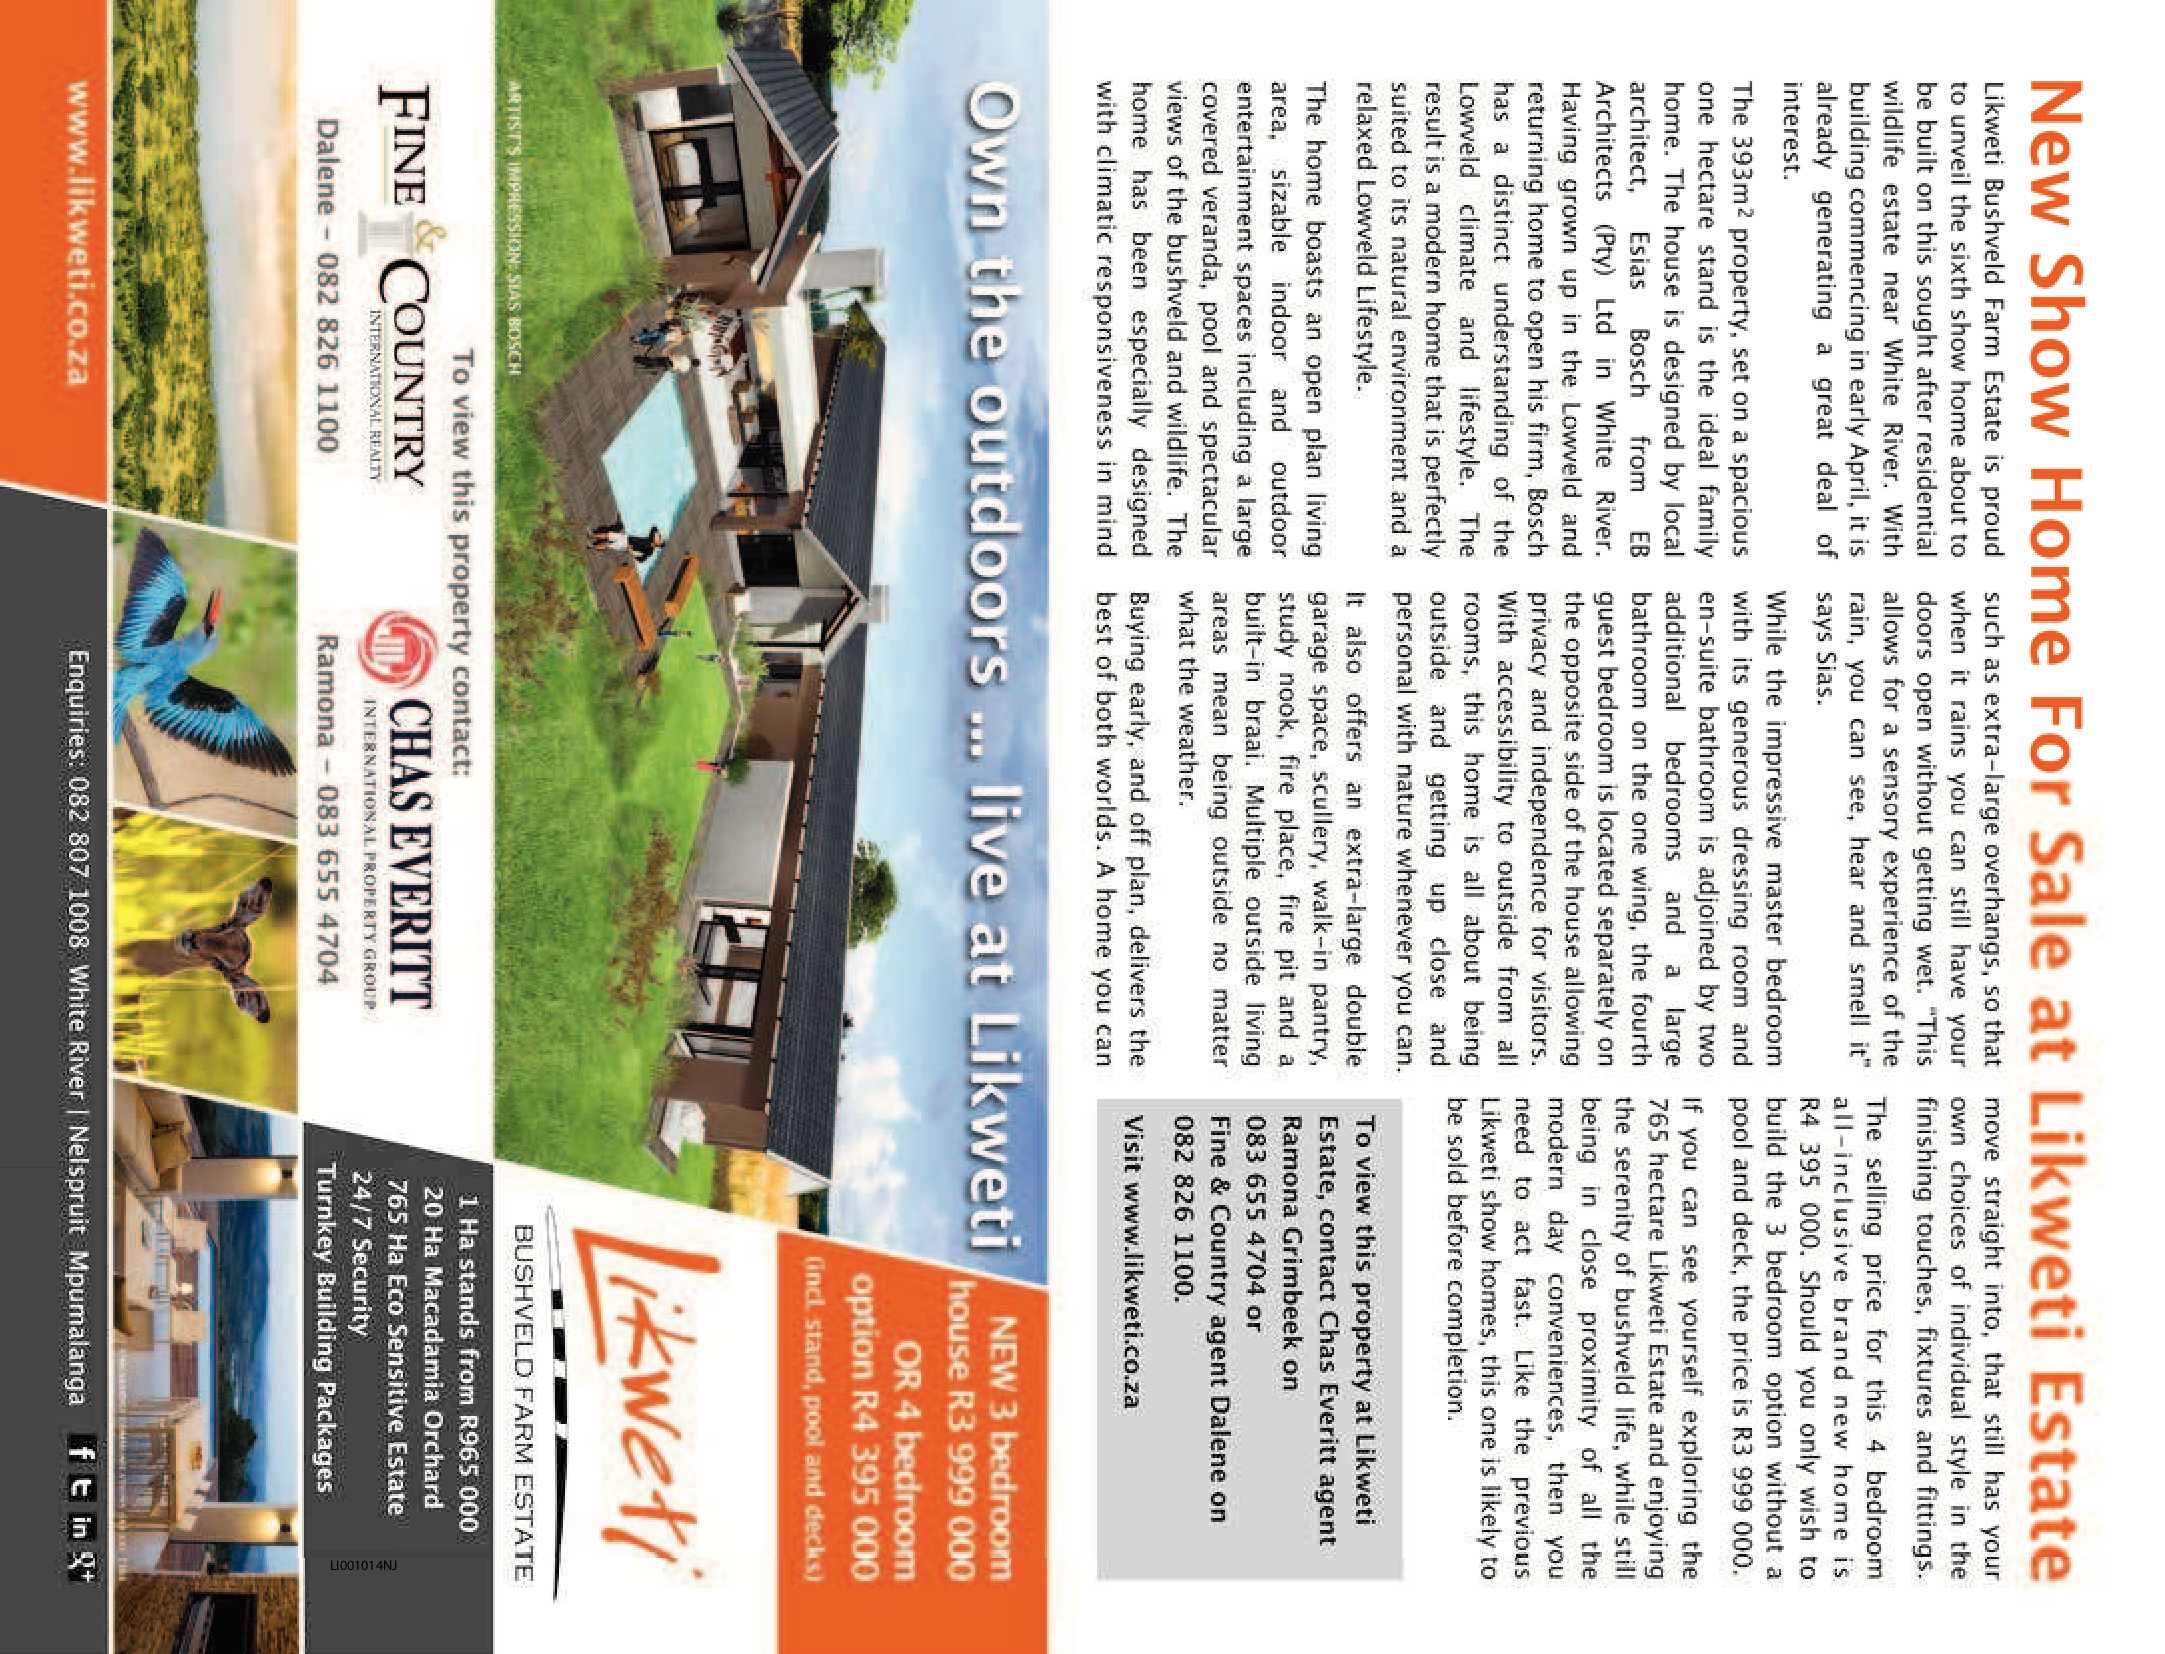 get-lowveld-april-2017-epapers-page-15